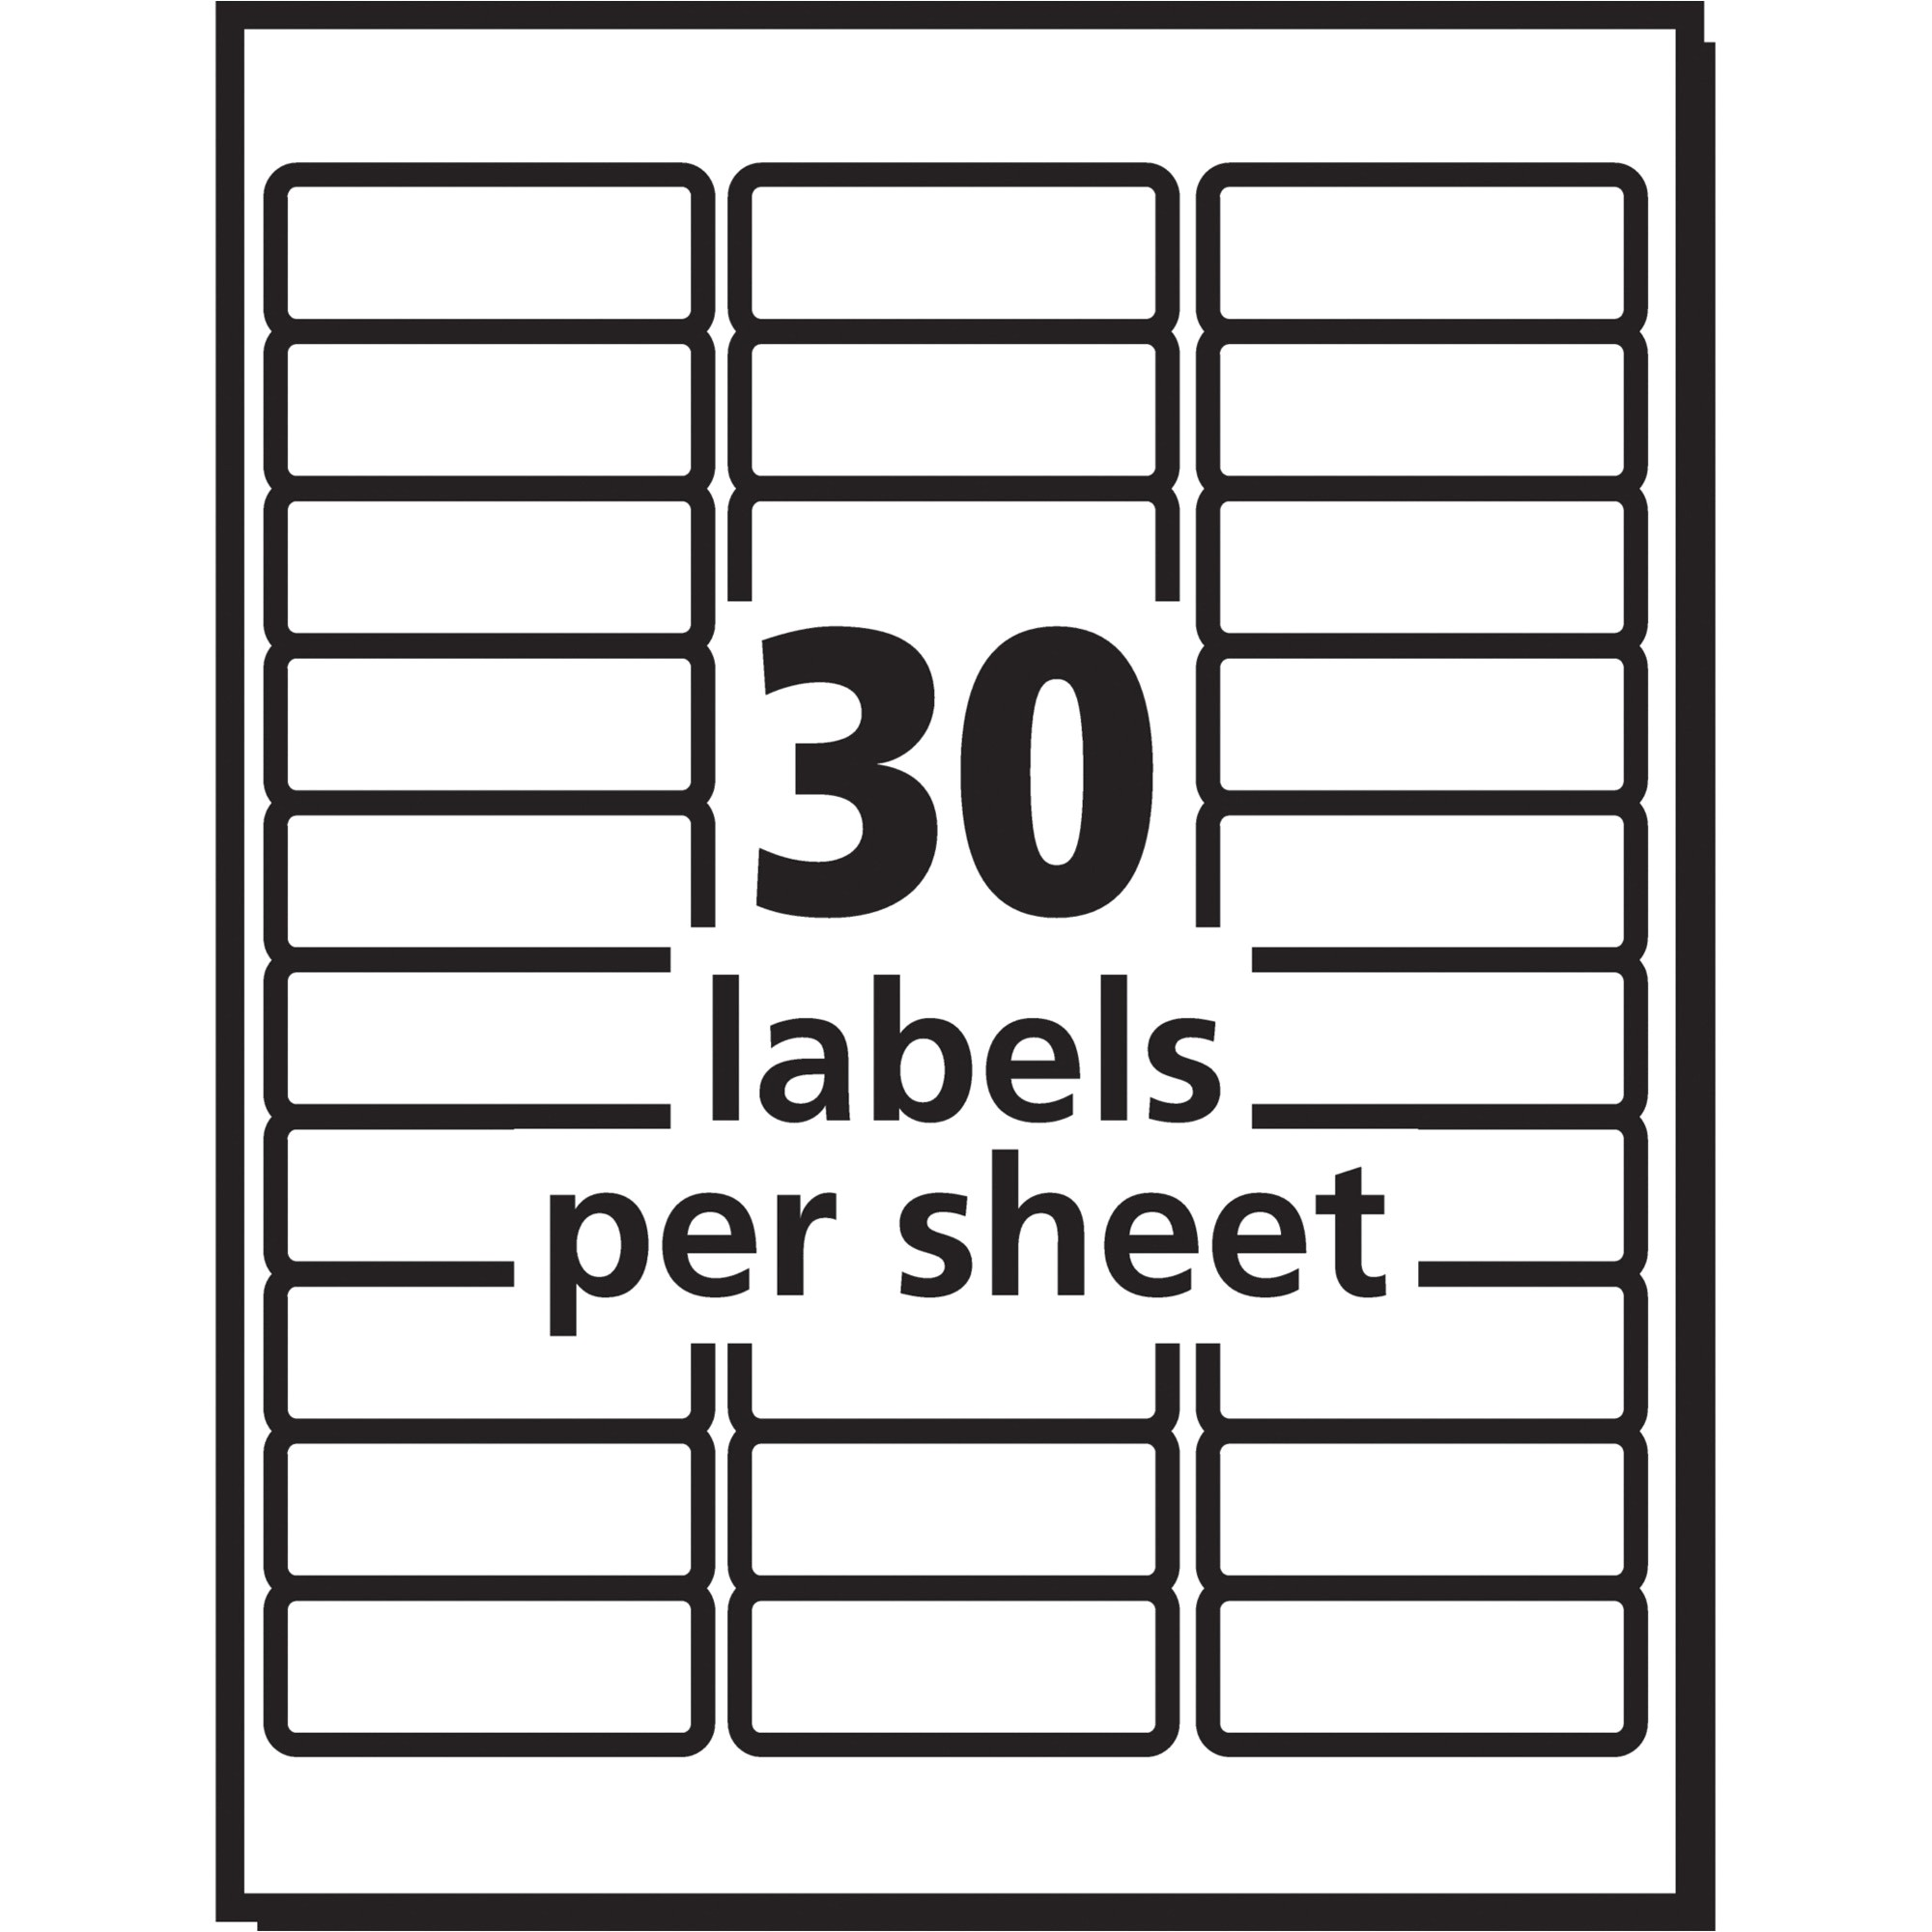 Avery Com Templates 8160 Mailing Labels Avery 8160 Label Template Word Templates Data